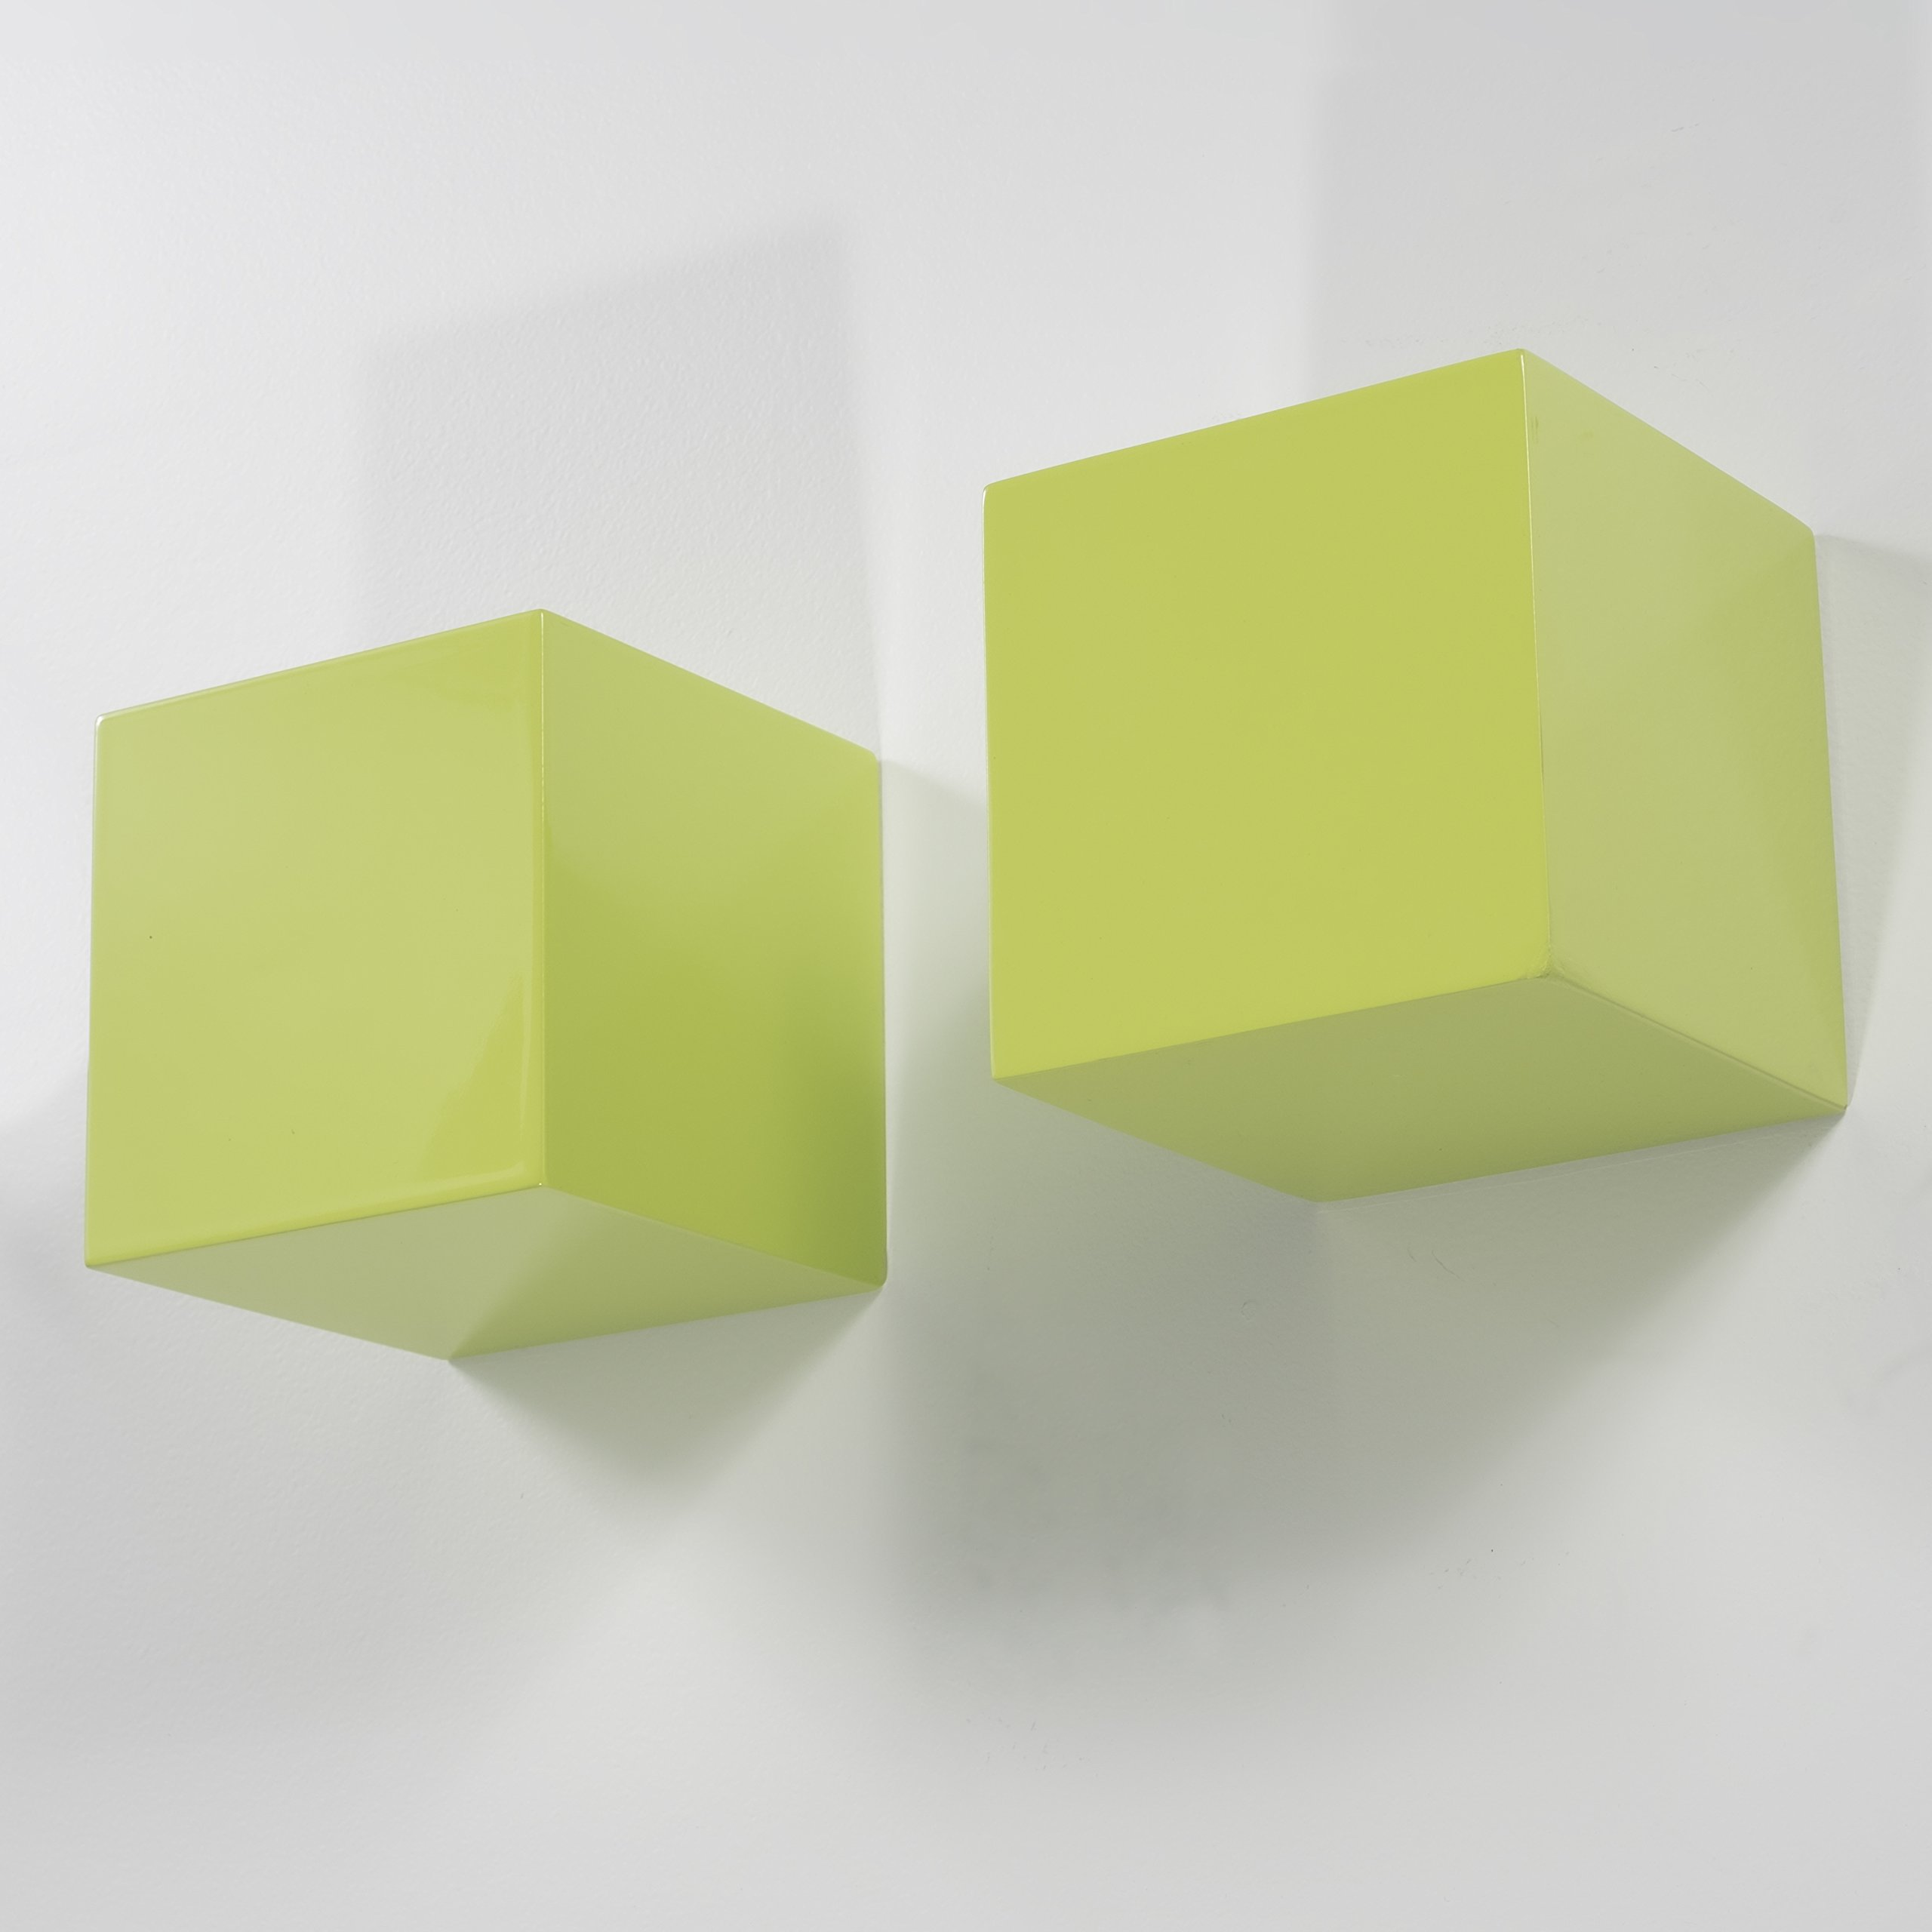 Brightmaison Living Room Decorative Square Wall Cubes Floating Block Shelves Set of 2 (Green) by Brightmaison